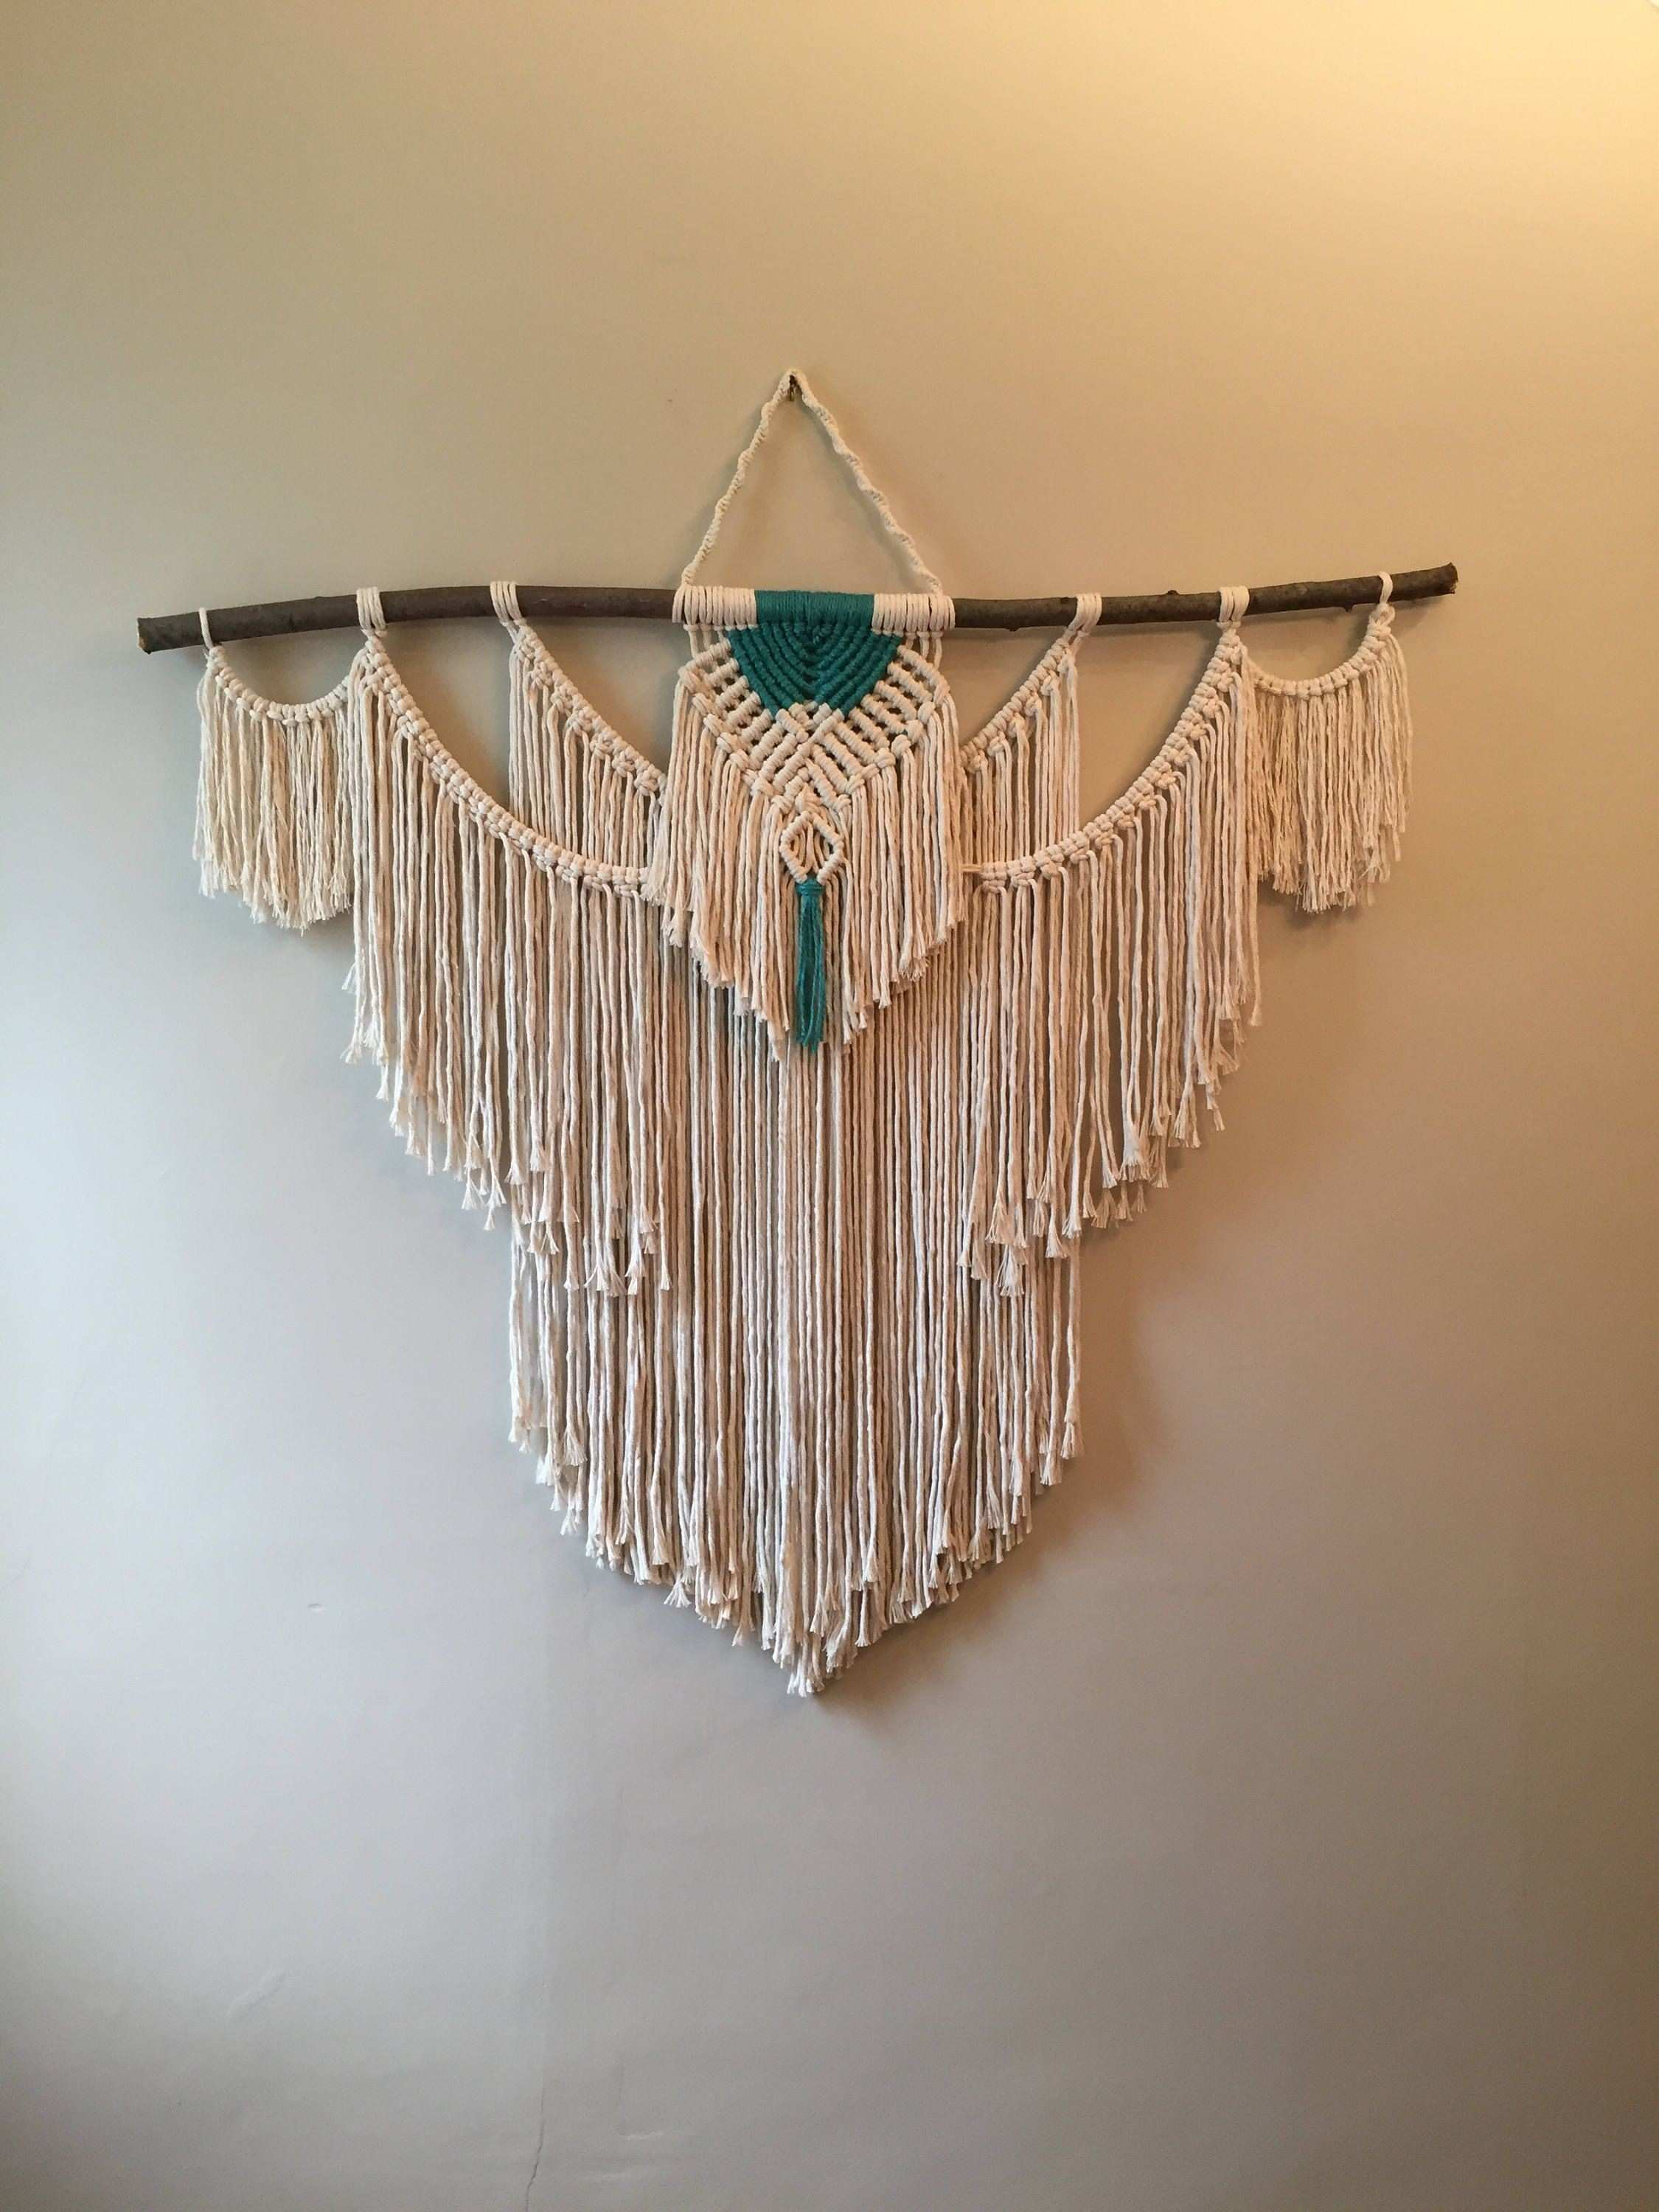 Hanging Wall Tapestries New Macrame Wall Hanging Macrame Decor